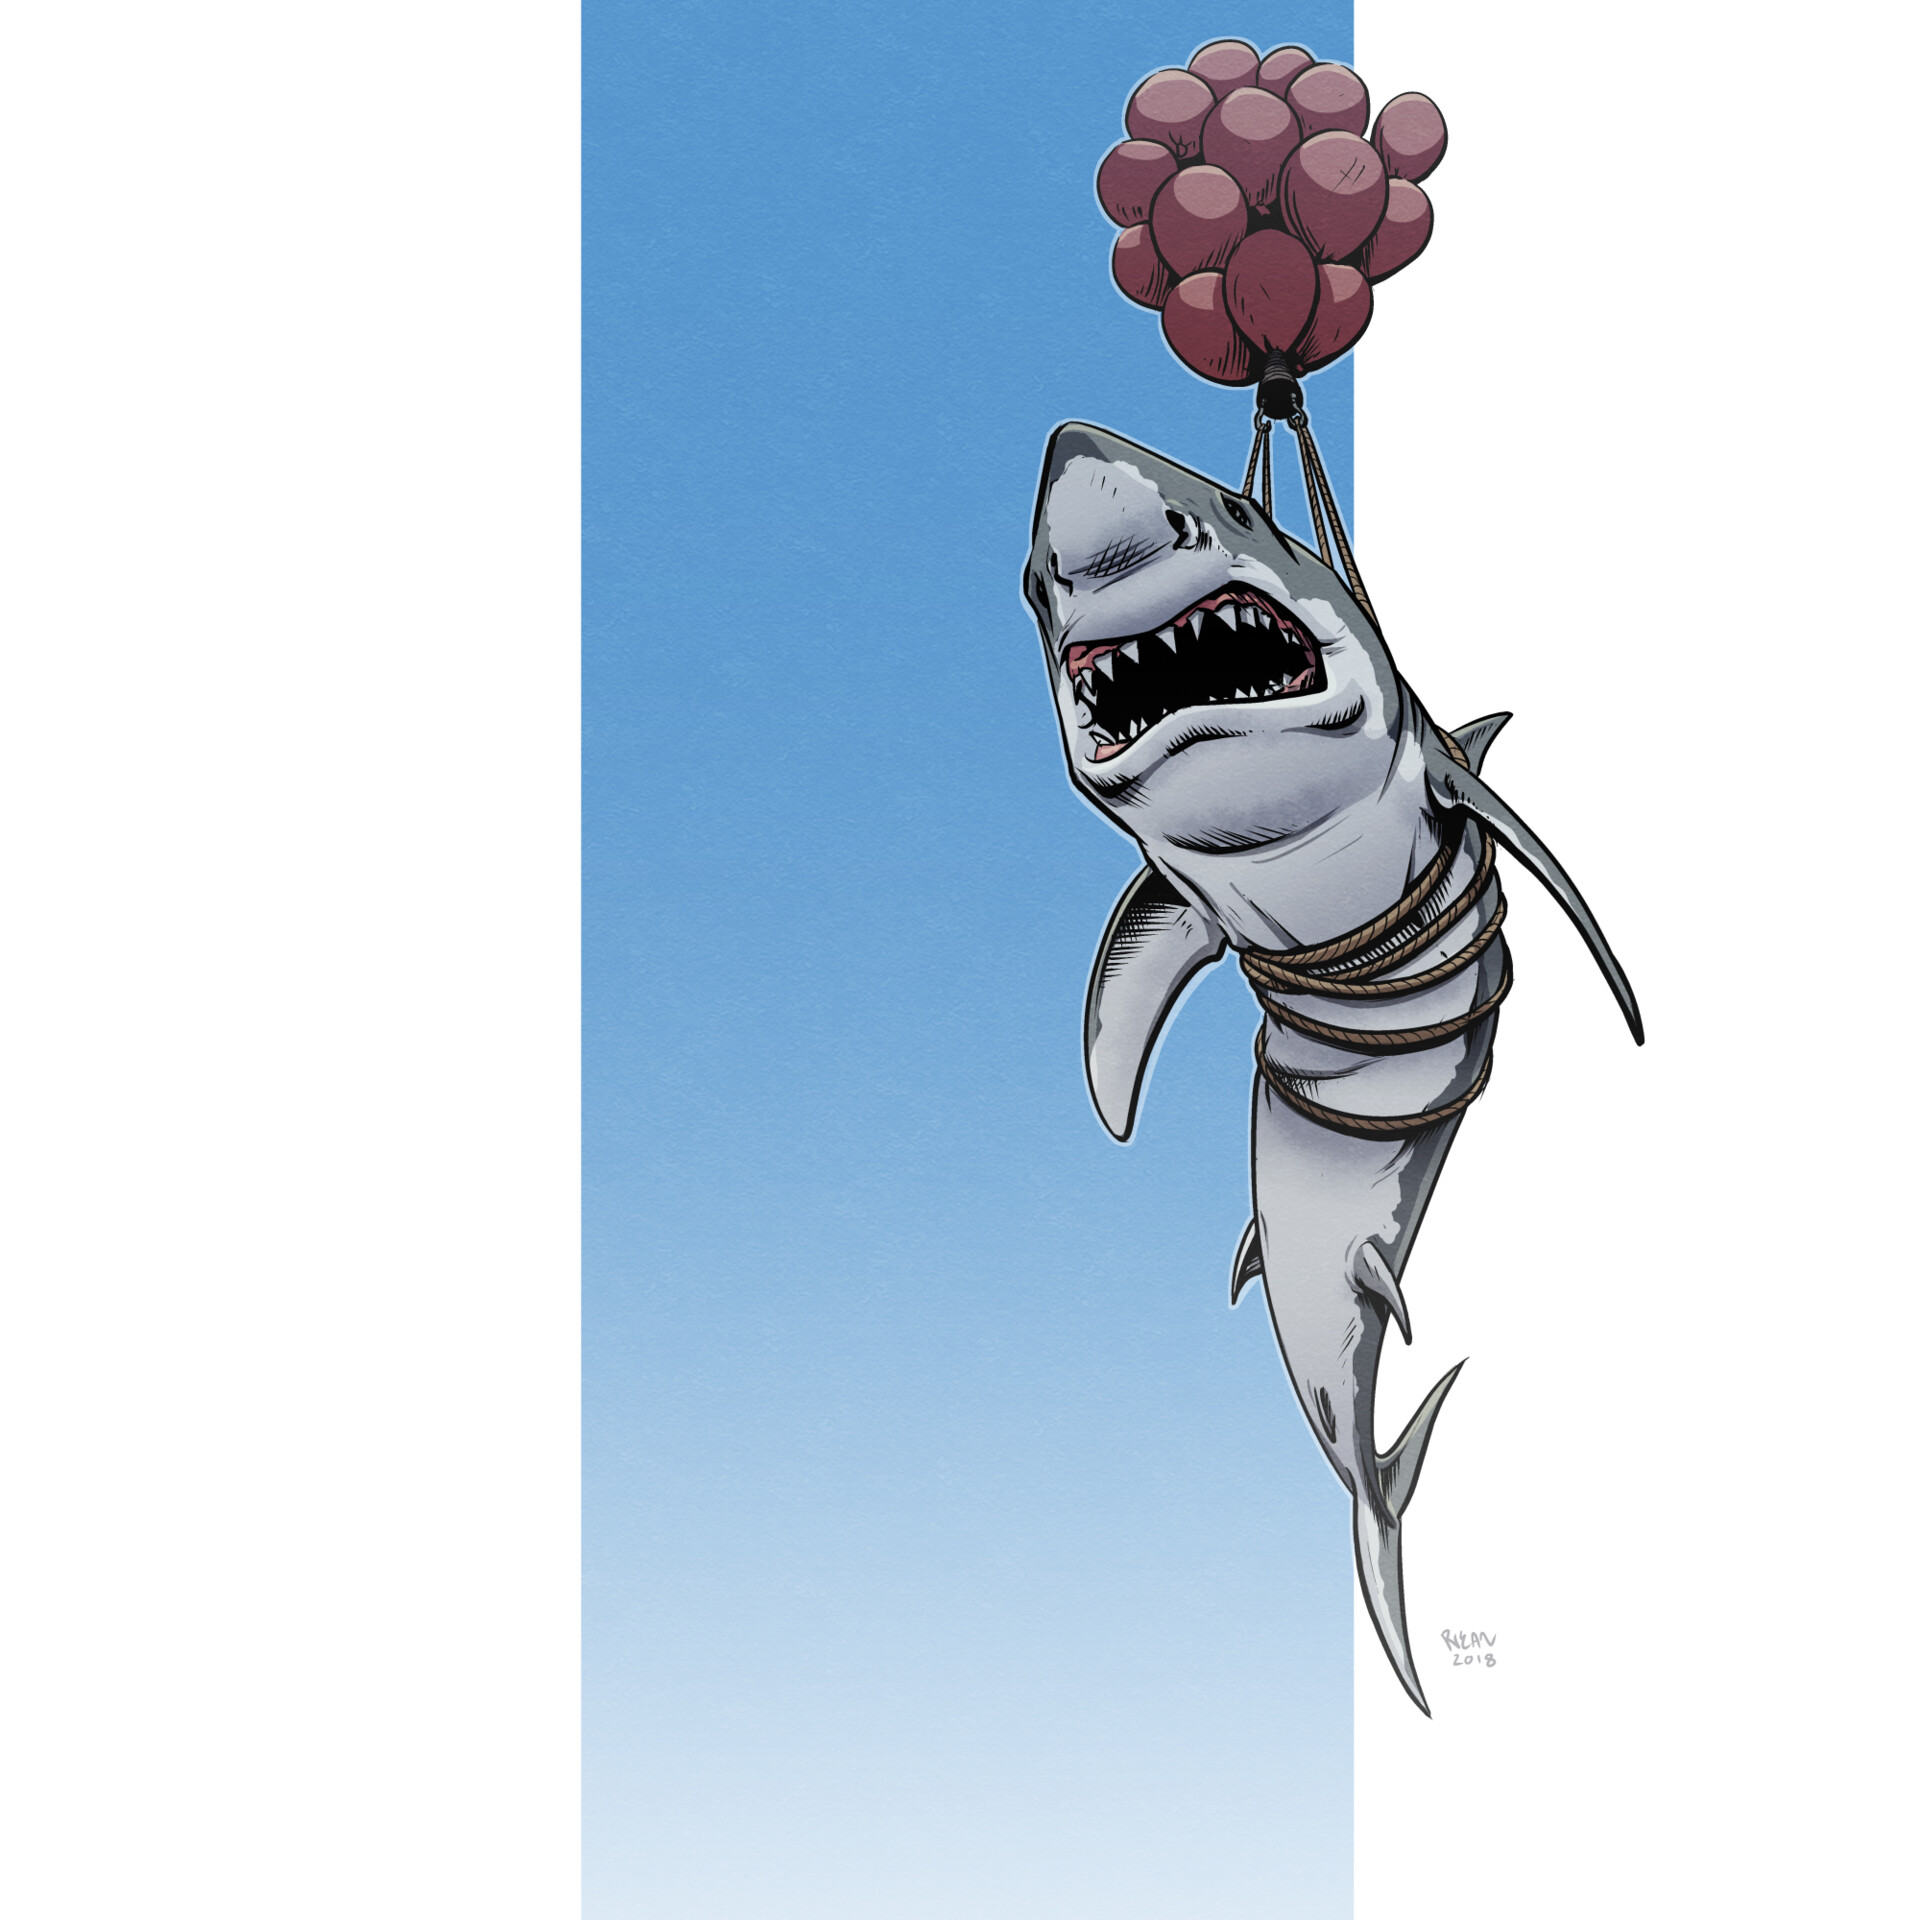 Ryan james neal shark balloon sml 02